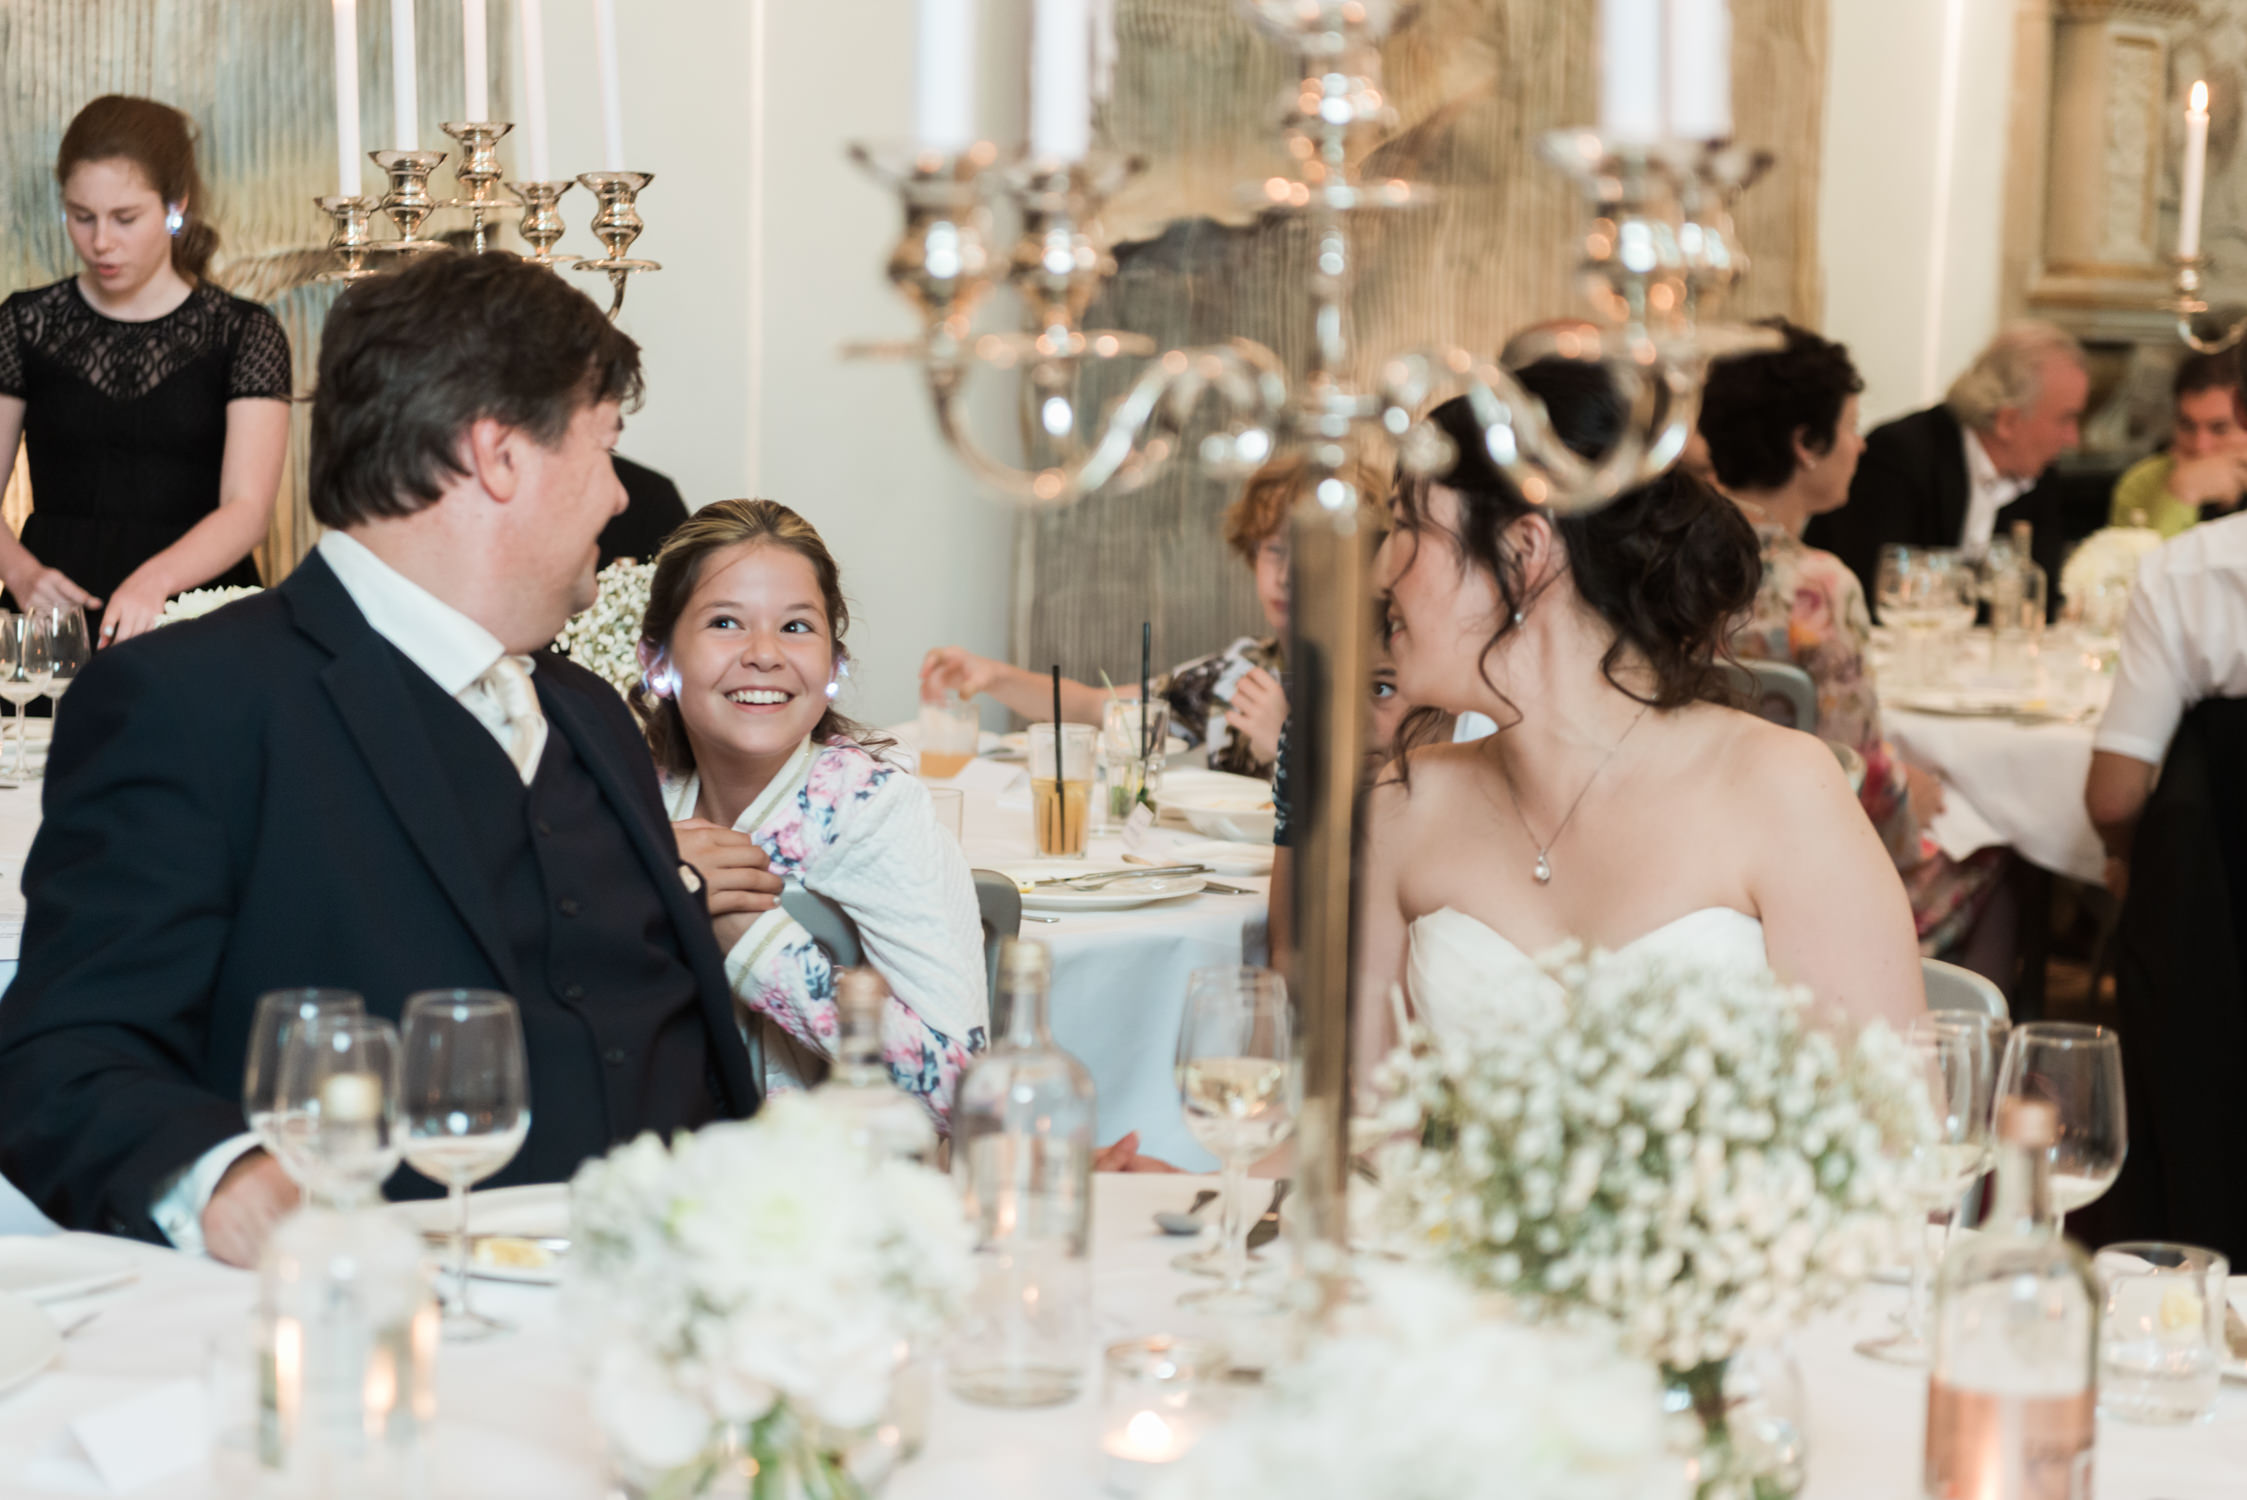 Getting the best out of your wedding photography tips